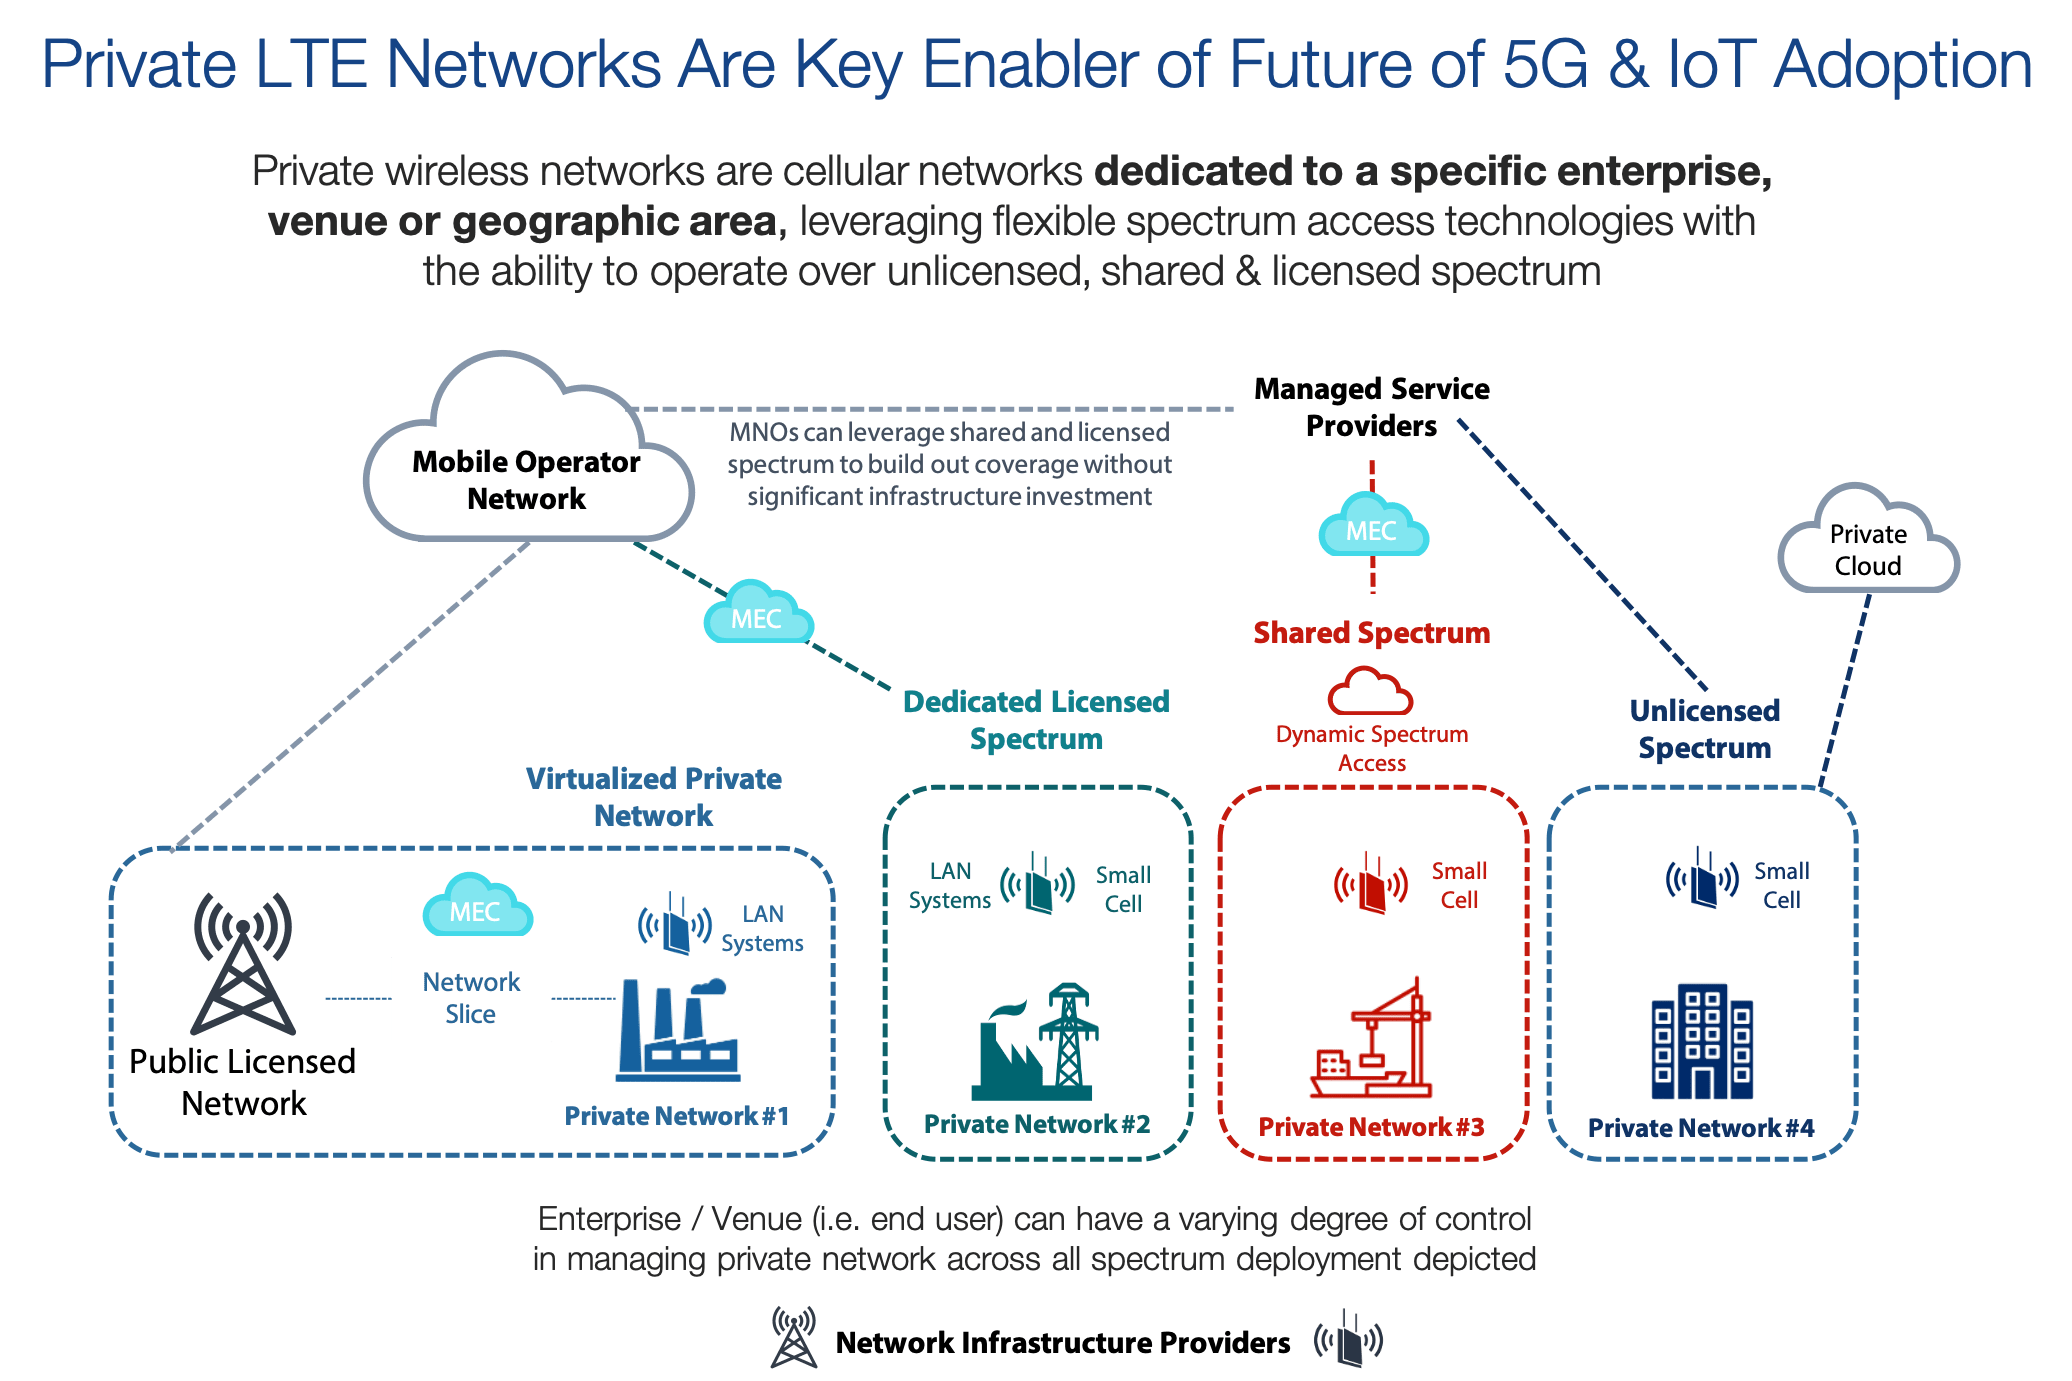 Private LTE networks are a key enabler of 5G and IoT adoption